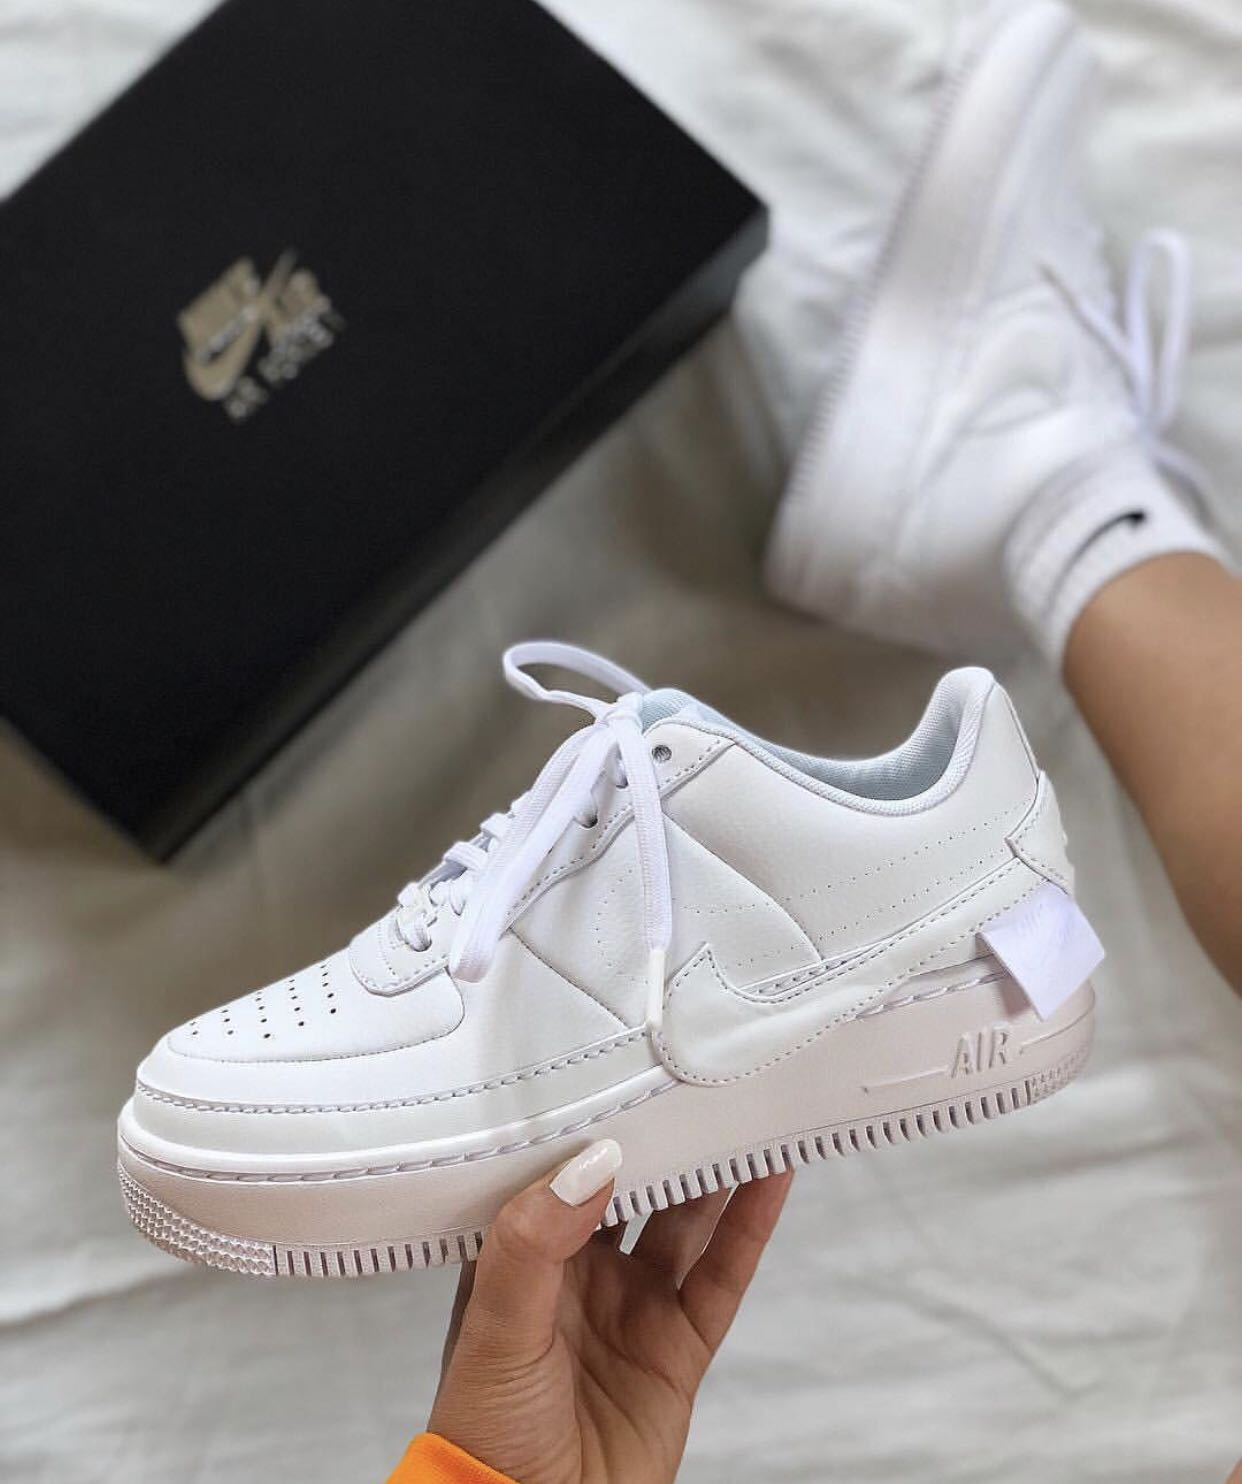 3f46a11db4 Nike Air Force 1 Jester XX, Women's Fashion, Shoes, Sneakers on ...